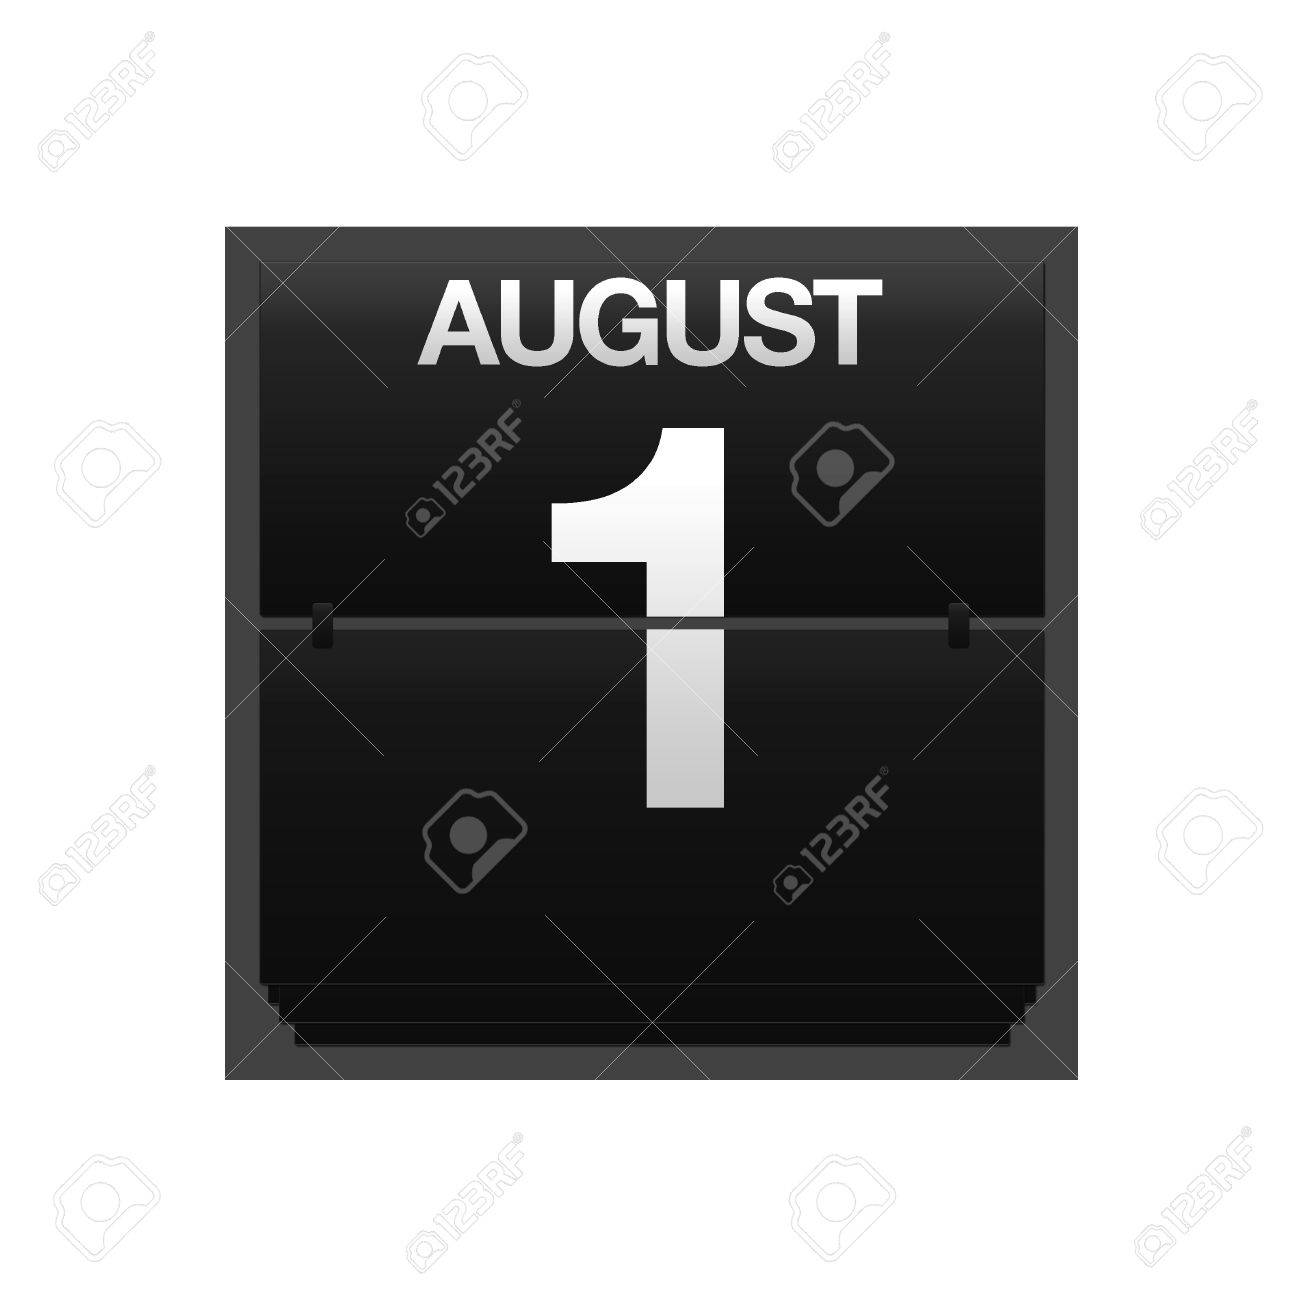 Illustration with a counter calendar august 1 Stock Photo - 15707402